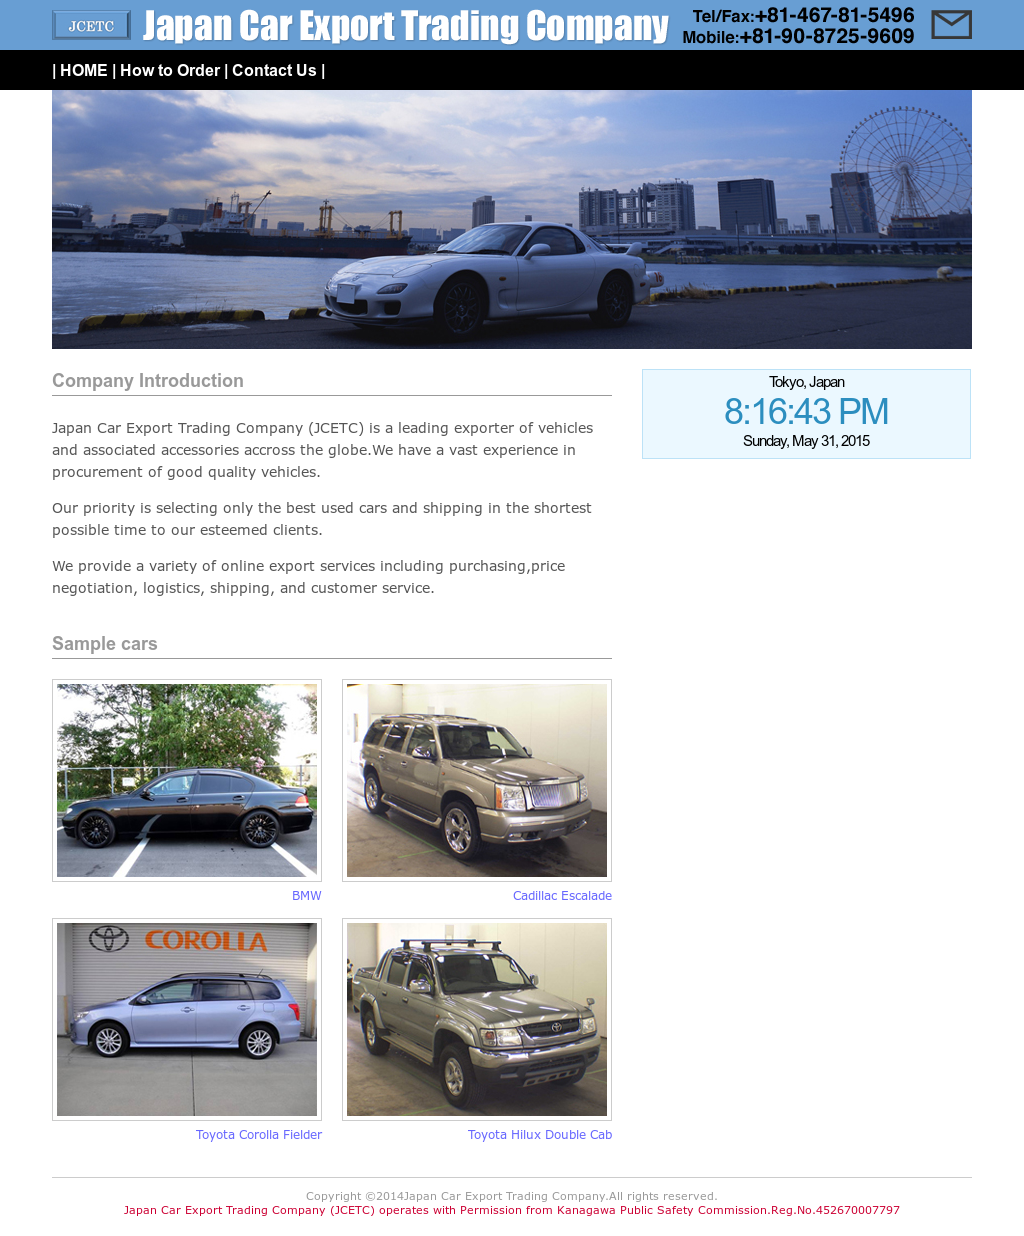 Japan Car Export Trading Company Competitors, Revenue and